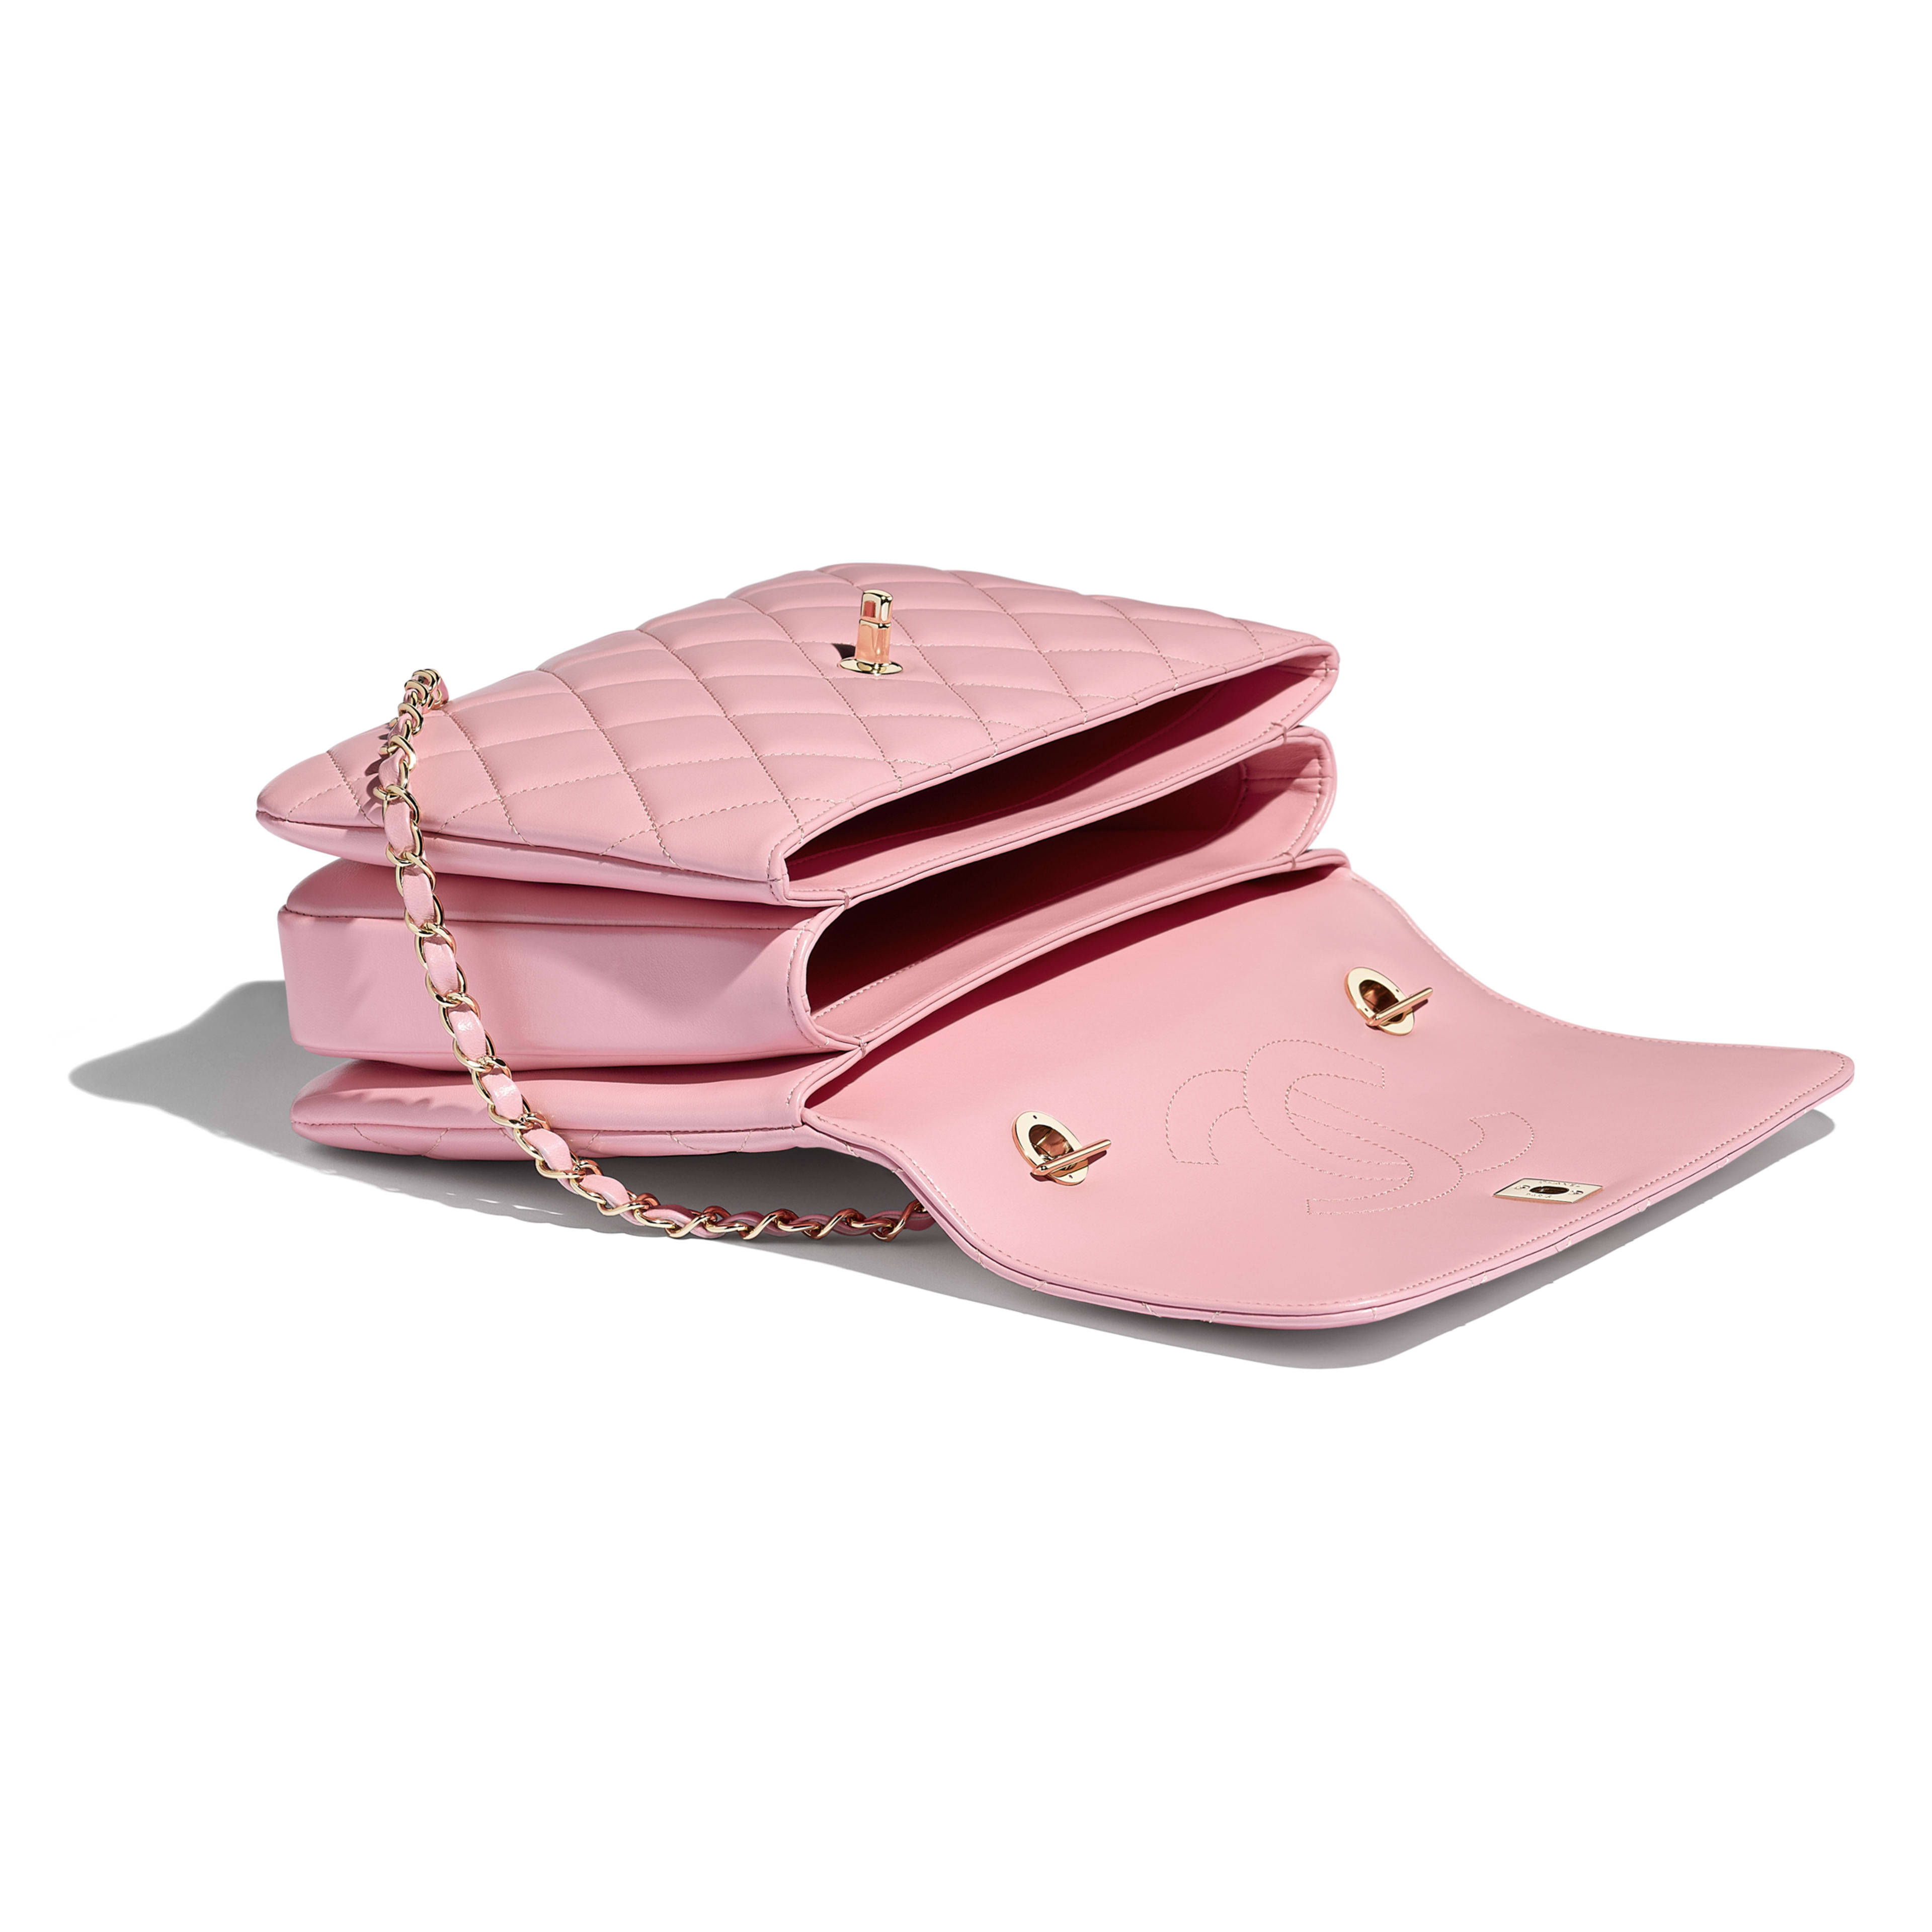 Flap Bag with Top Handle - Pink - Lambskin & Gold-Tone Metal - Other view - see full sized version